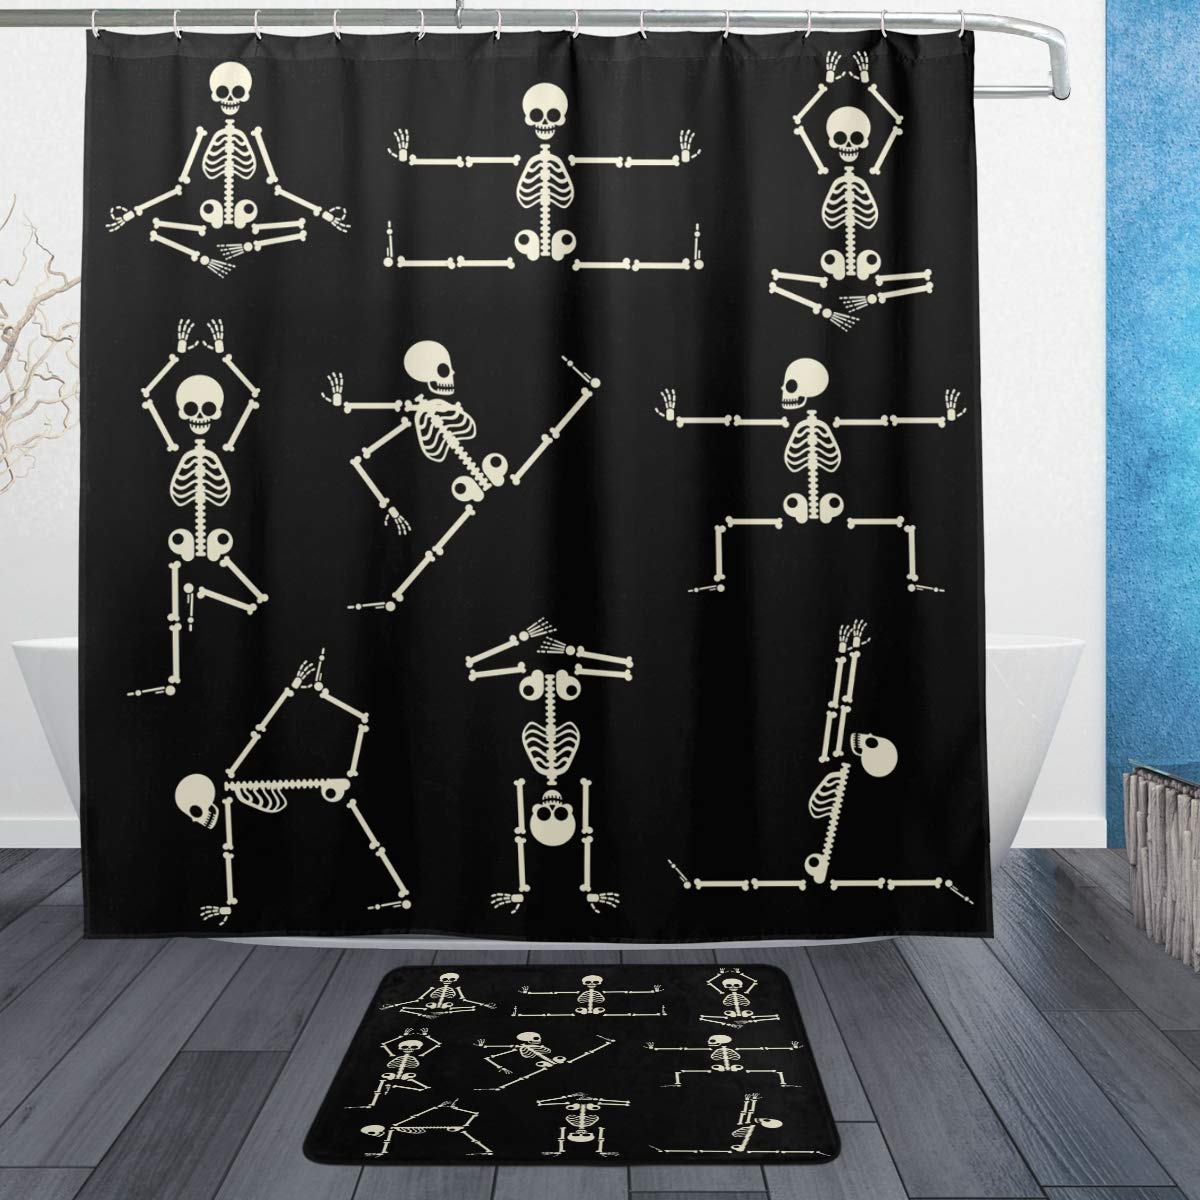 Amazon.com: SZZWY Kung Fu Yoga Skeletons Human Pose ...